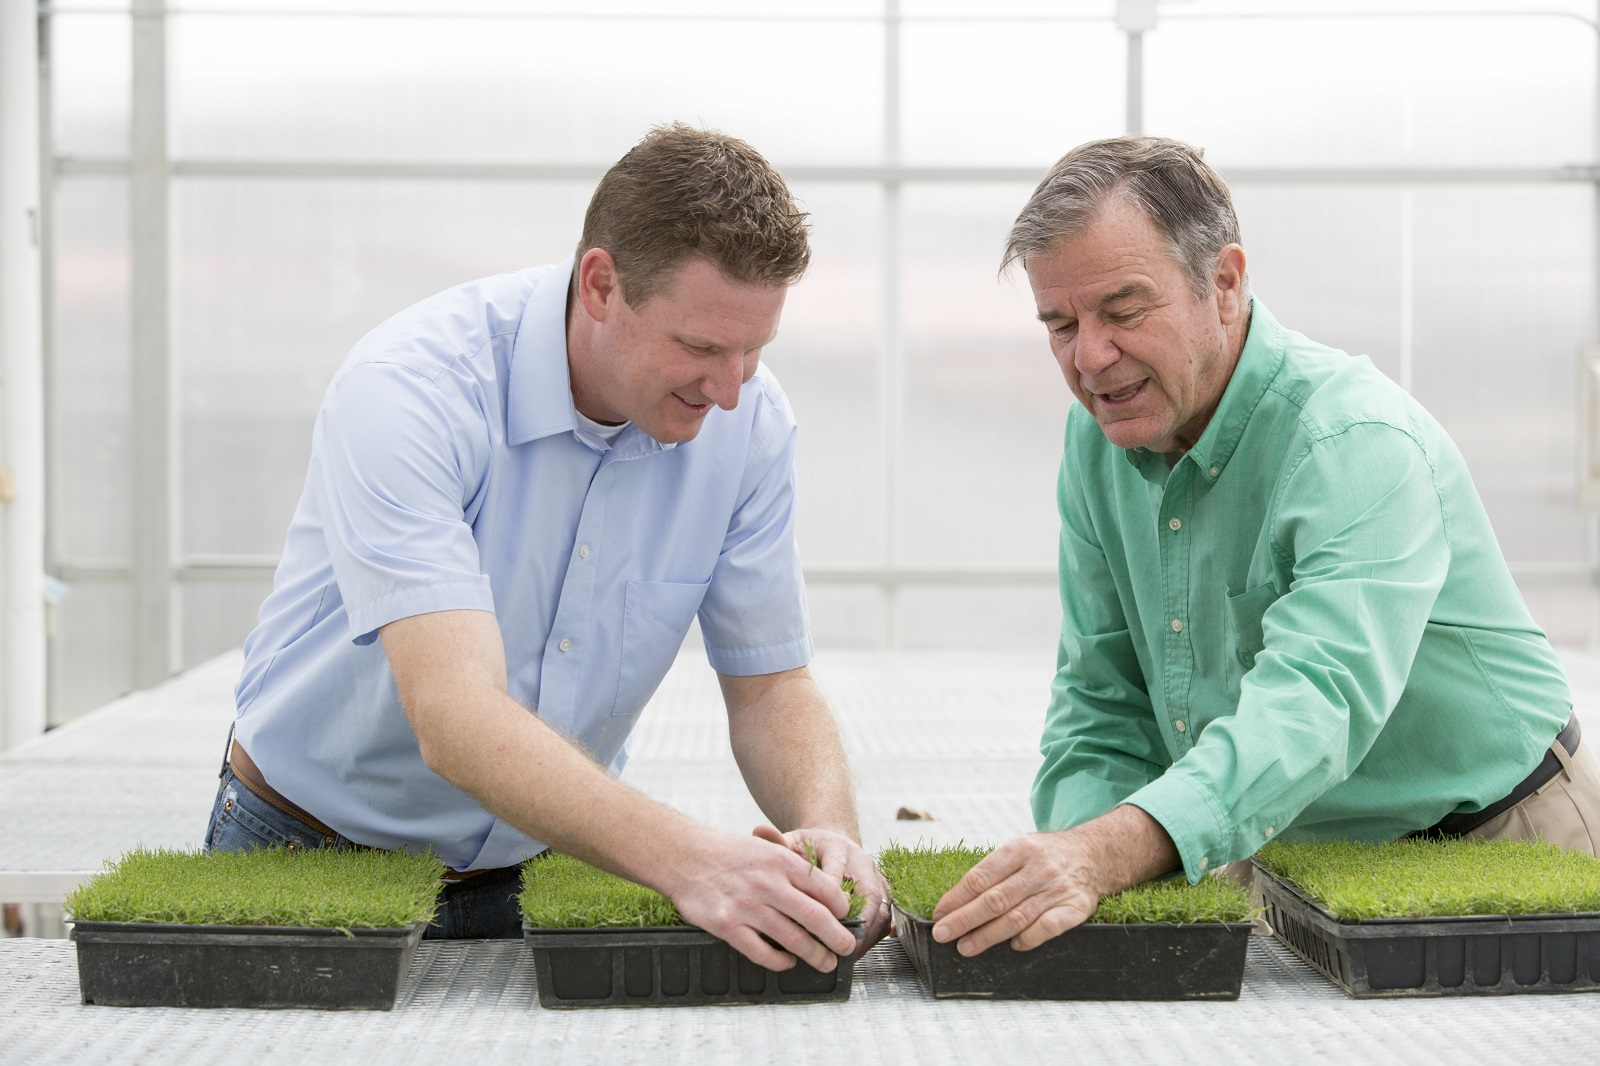 TifTuf Bermudagrass's Growth Impresses Licensees